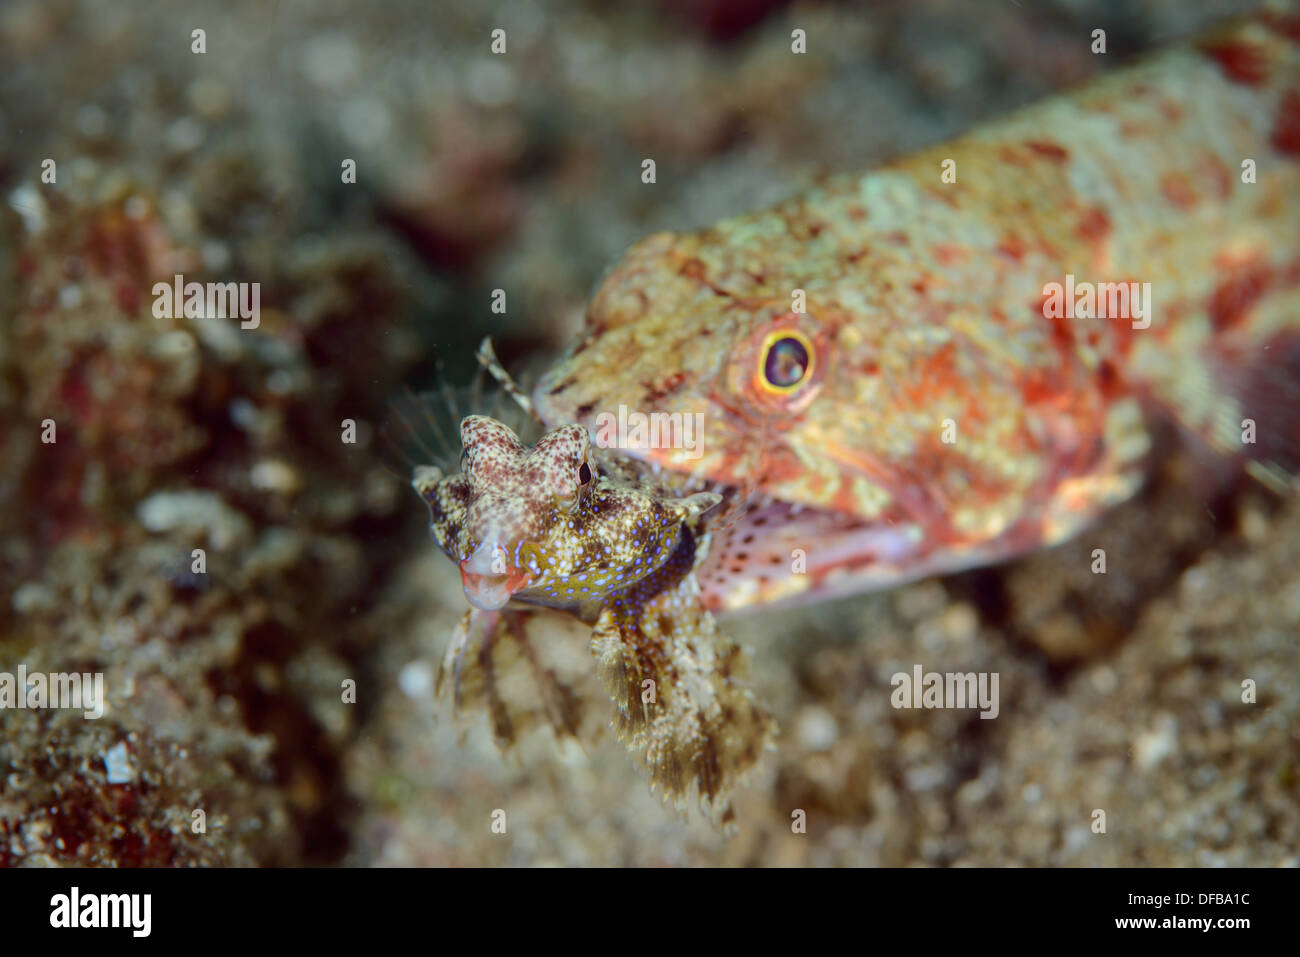 A Lizard Fish Eating A Dragonet Fish Indonesia Lembeh